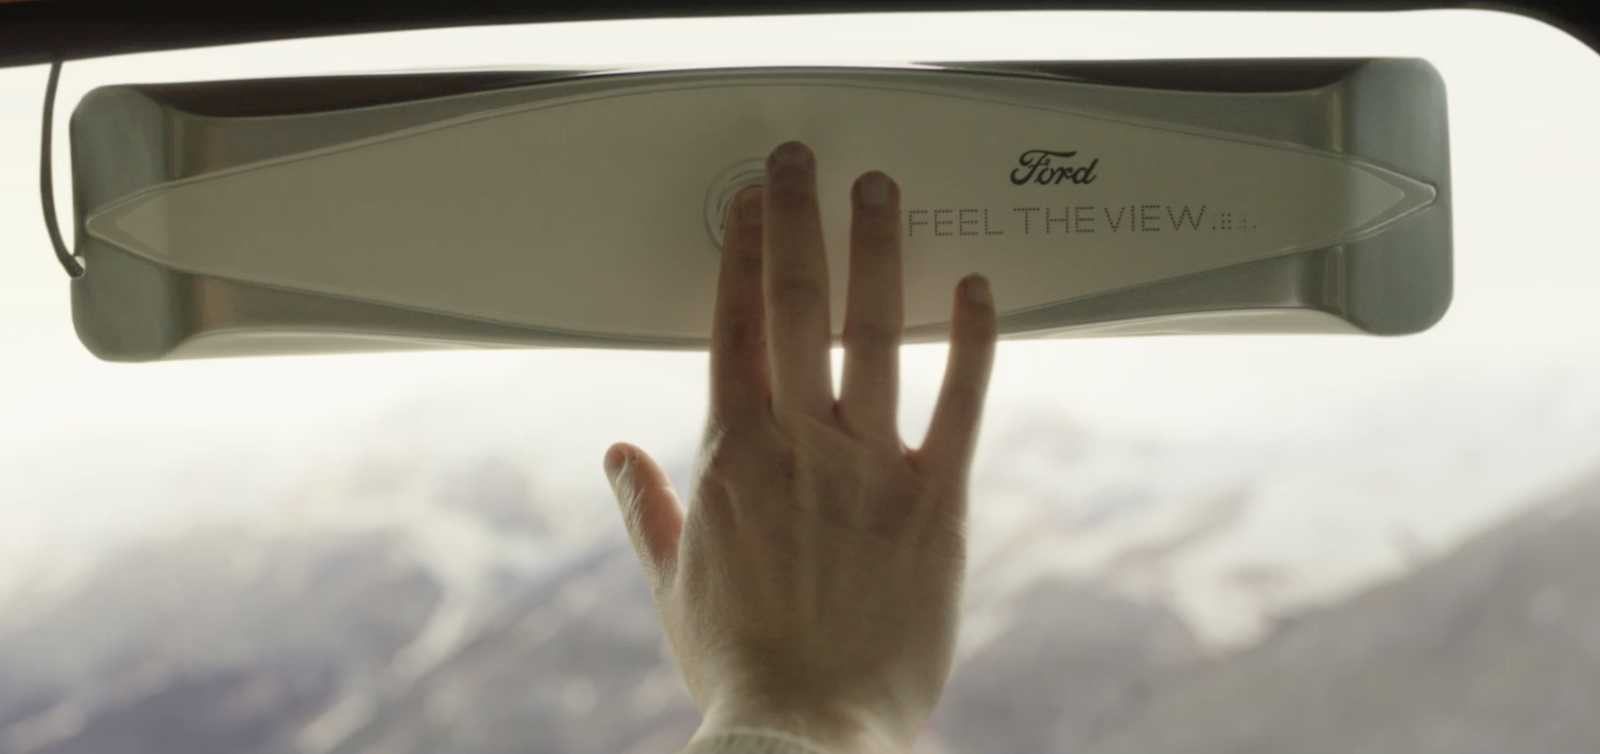 This new technology lets blind people 'see' on a scenic car ride